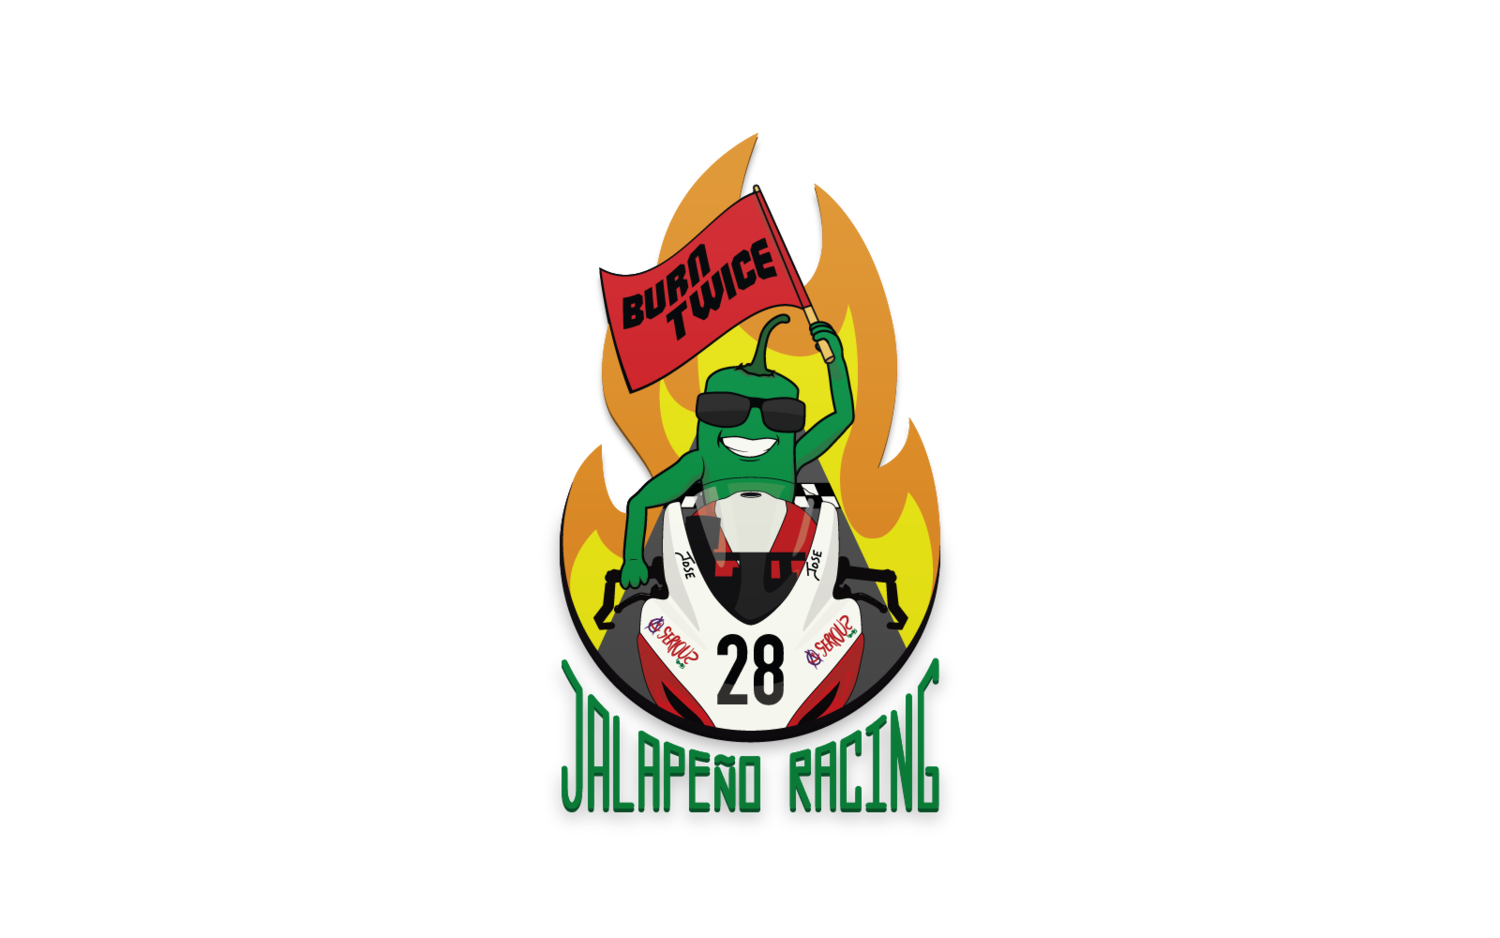 Logos Stephen Zarra New Kids What Started As A Joke Amongst Friends Became Fun Logo For Afm Racer Jose Flores